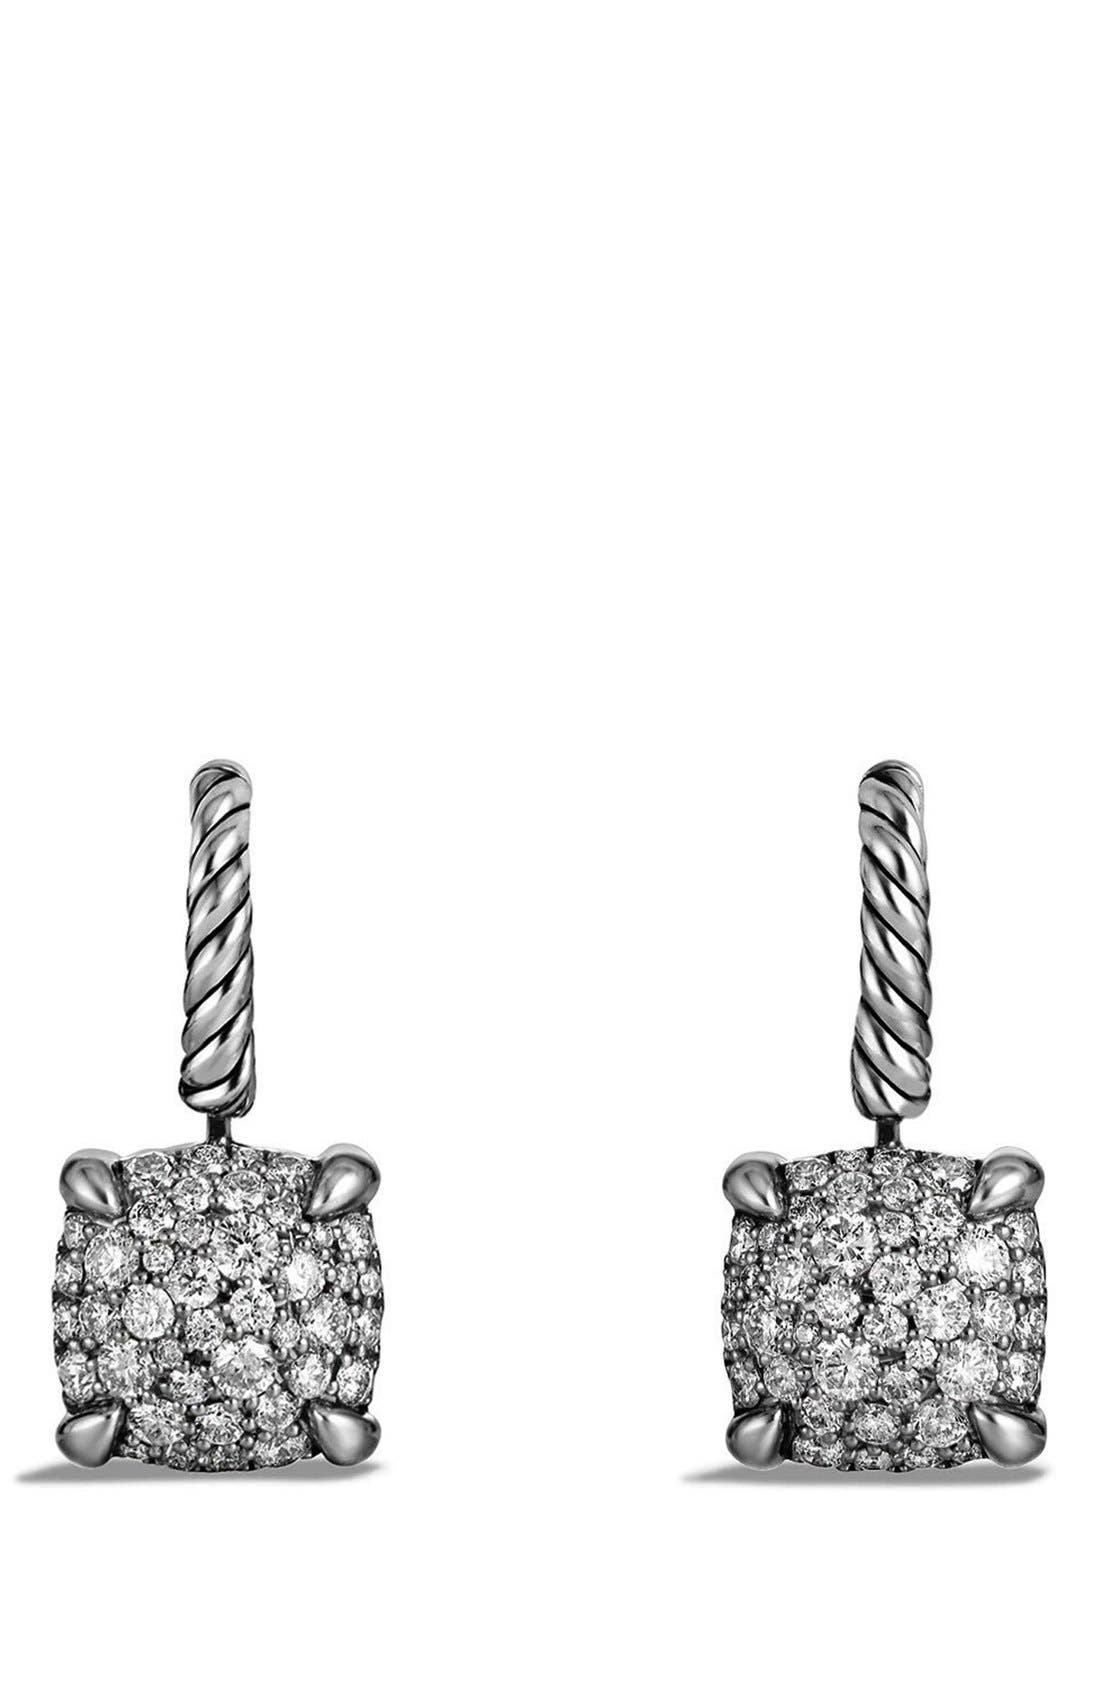 'Châtelaine' Drop Earrings with Diamonds,                             Main thumbnail 1, color,                             Silver